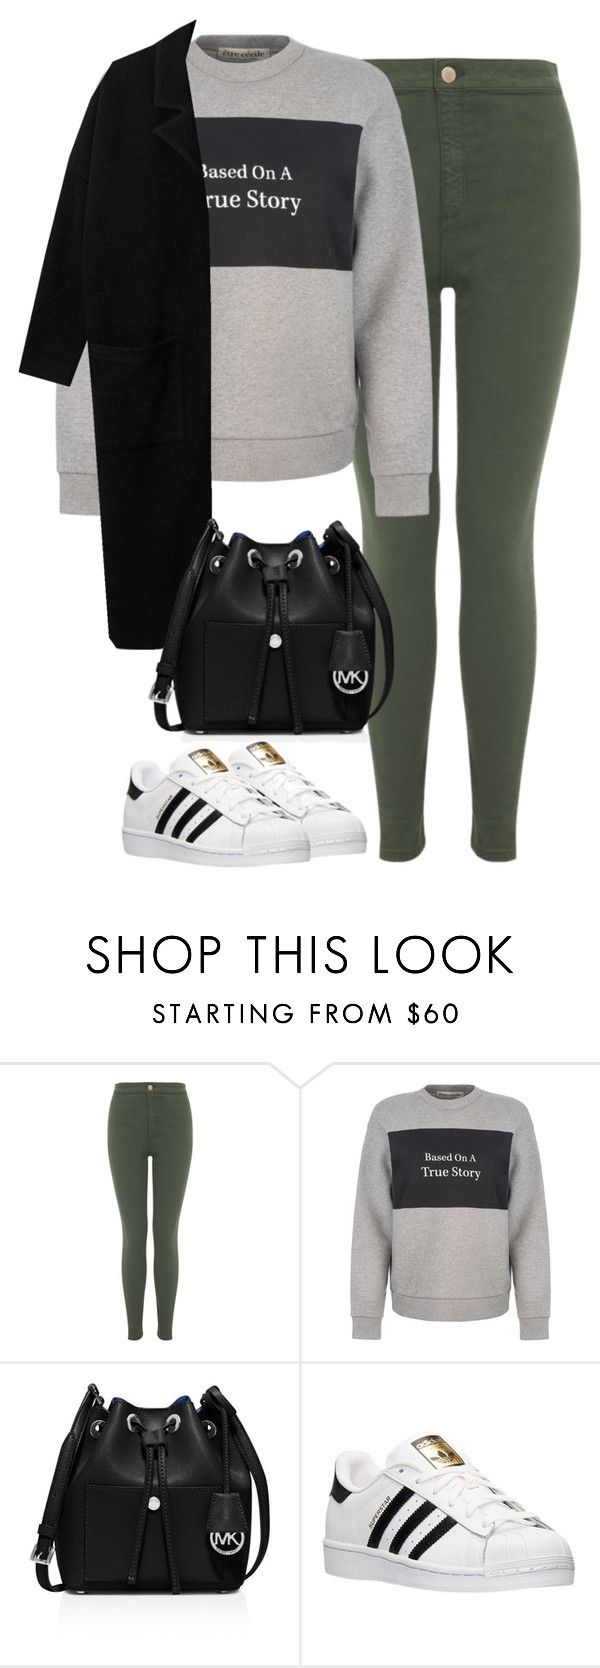 """Untitled #452"" by christyandnef on Polyvore featuring Miss Selfridge, Être Cécile, MICHAEL Michael Kors, adidas, women's clothing, women, female, woman, misses and juniors"